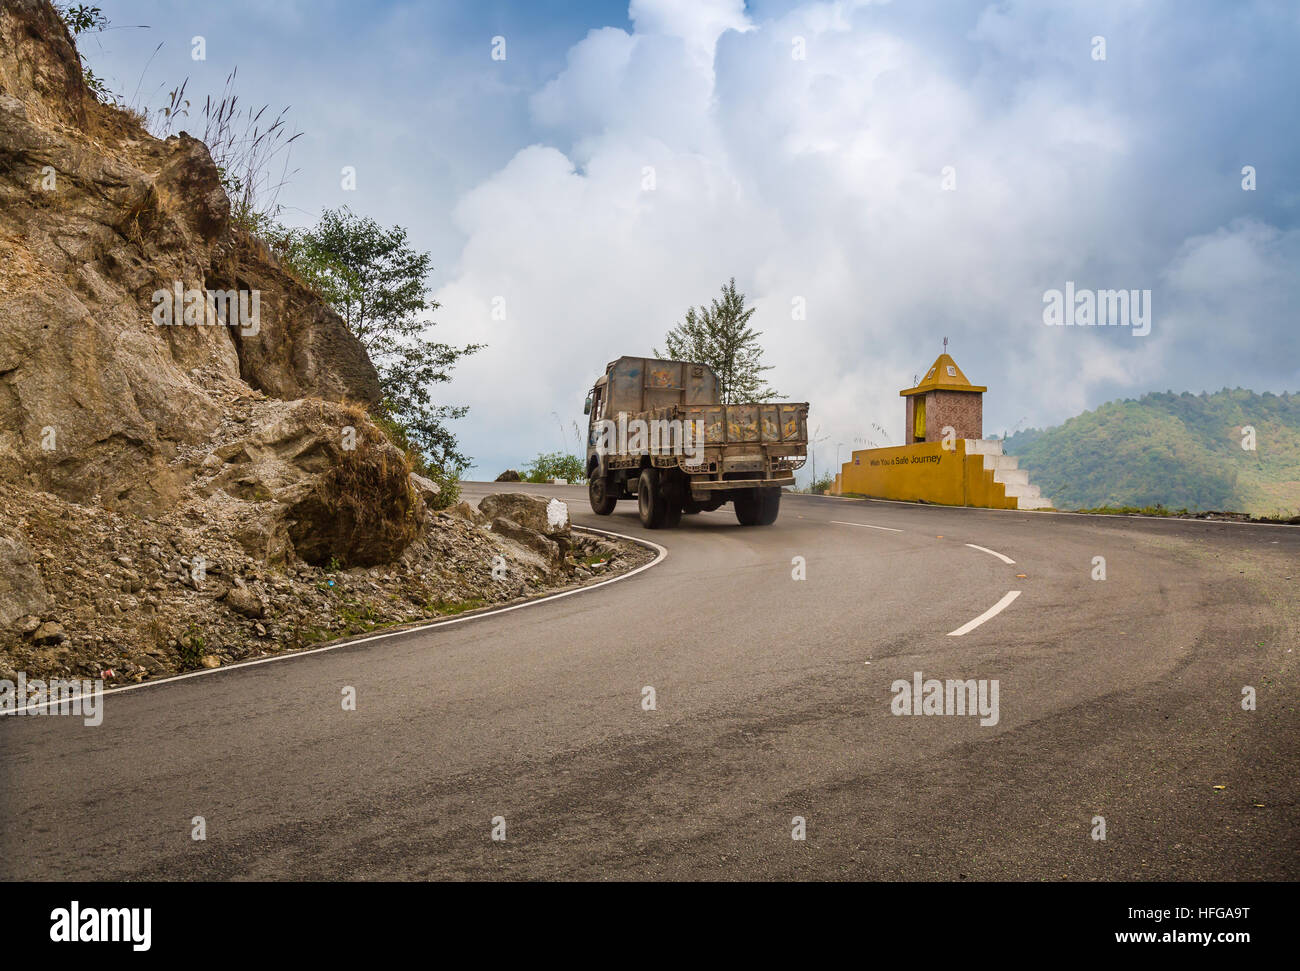 Truck travels through a Himalayan mountain road from Lachung to Chungthang Sikkim, India - Stock Image